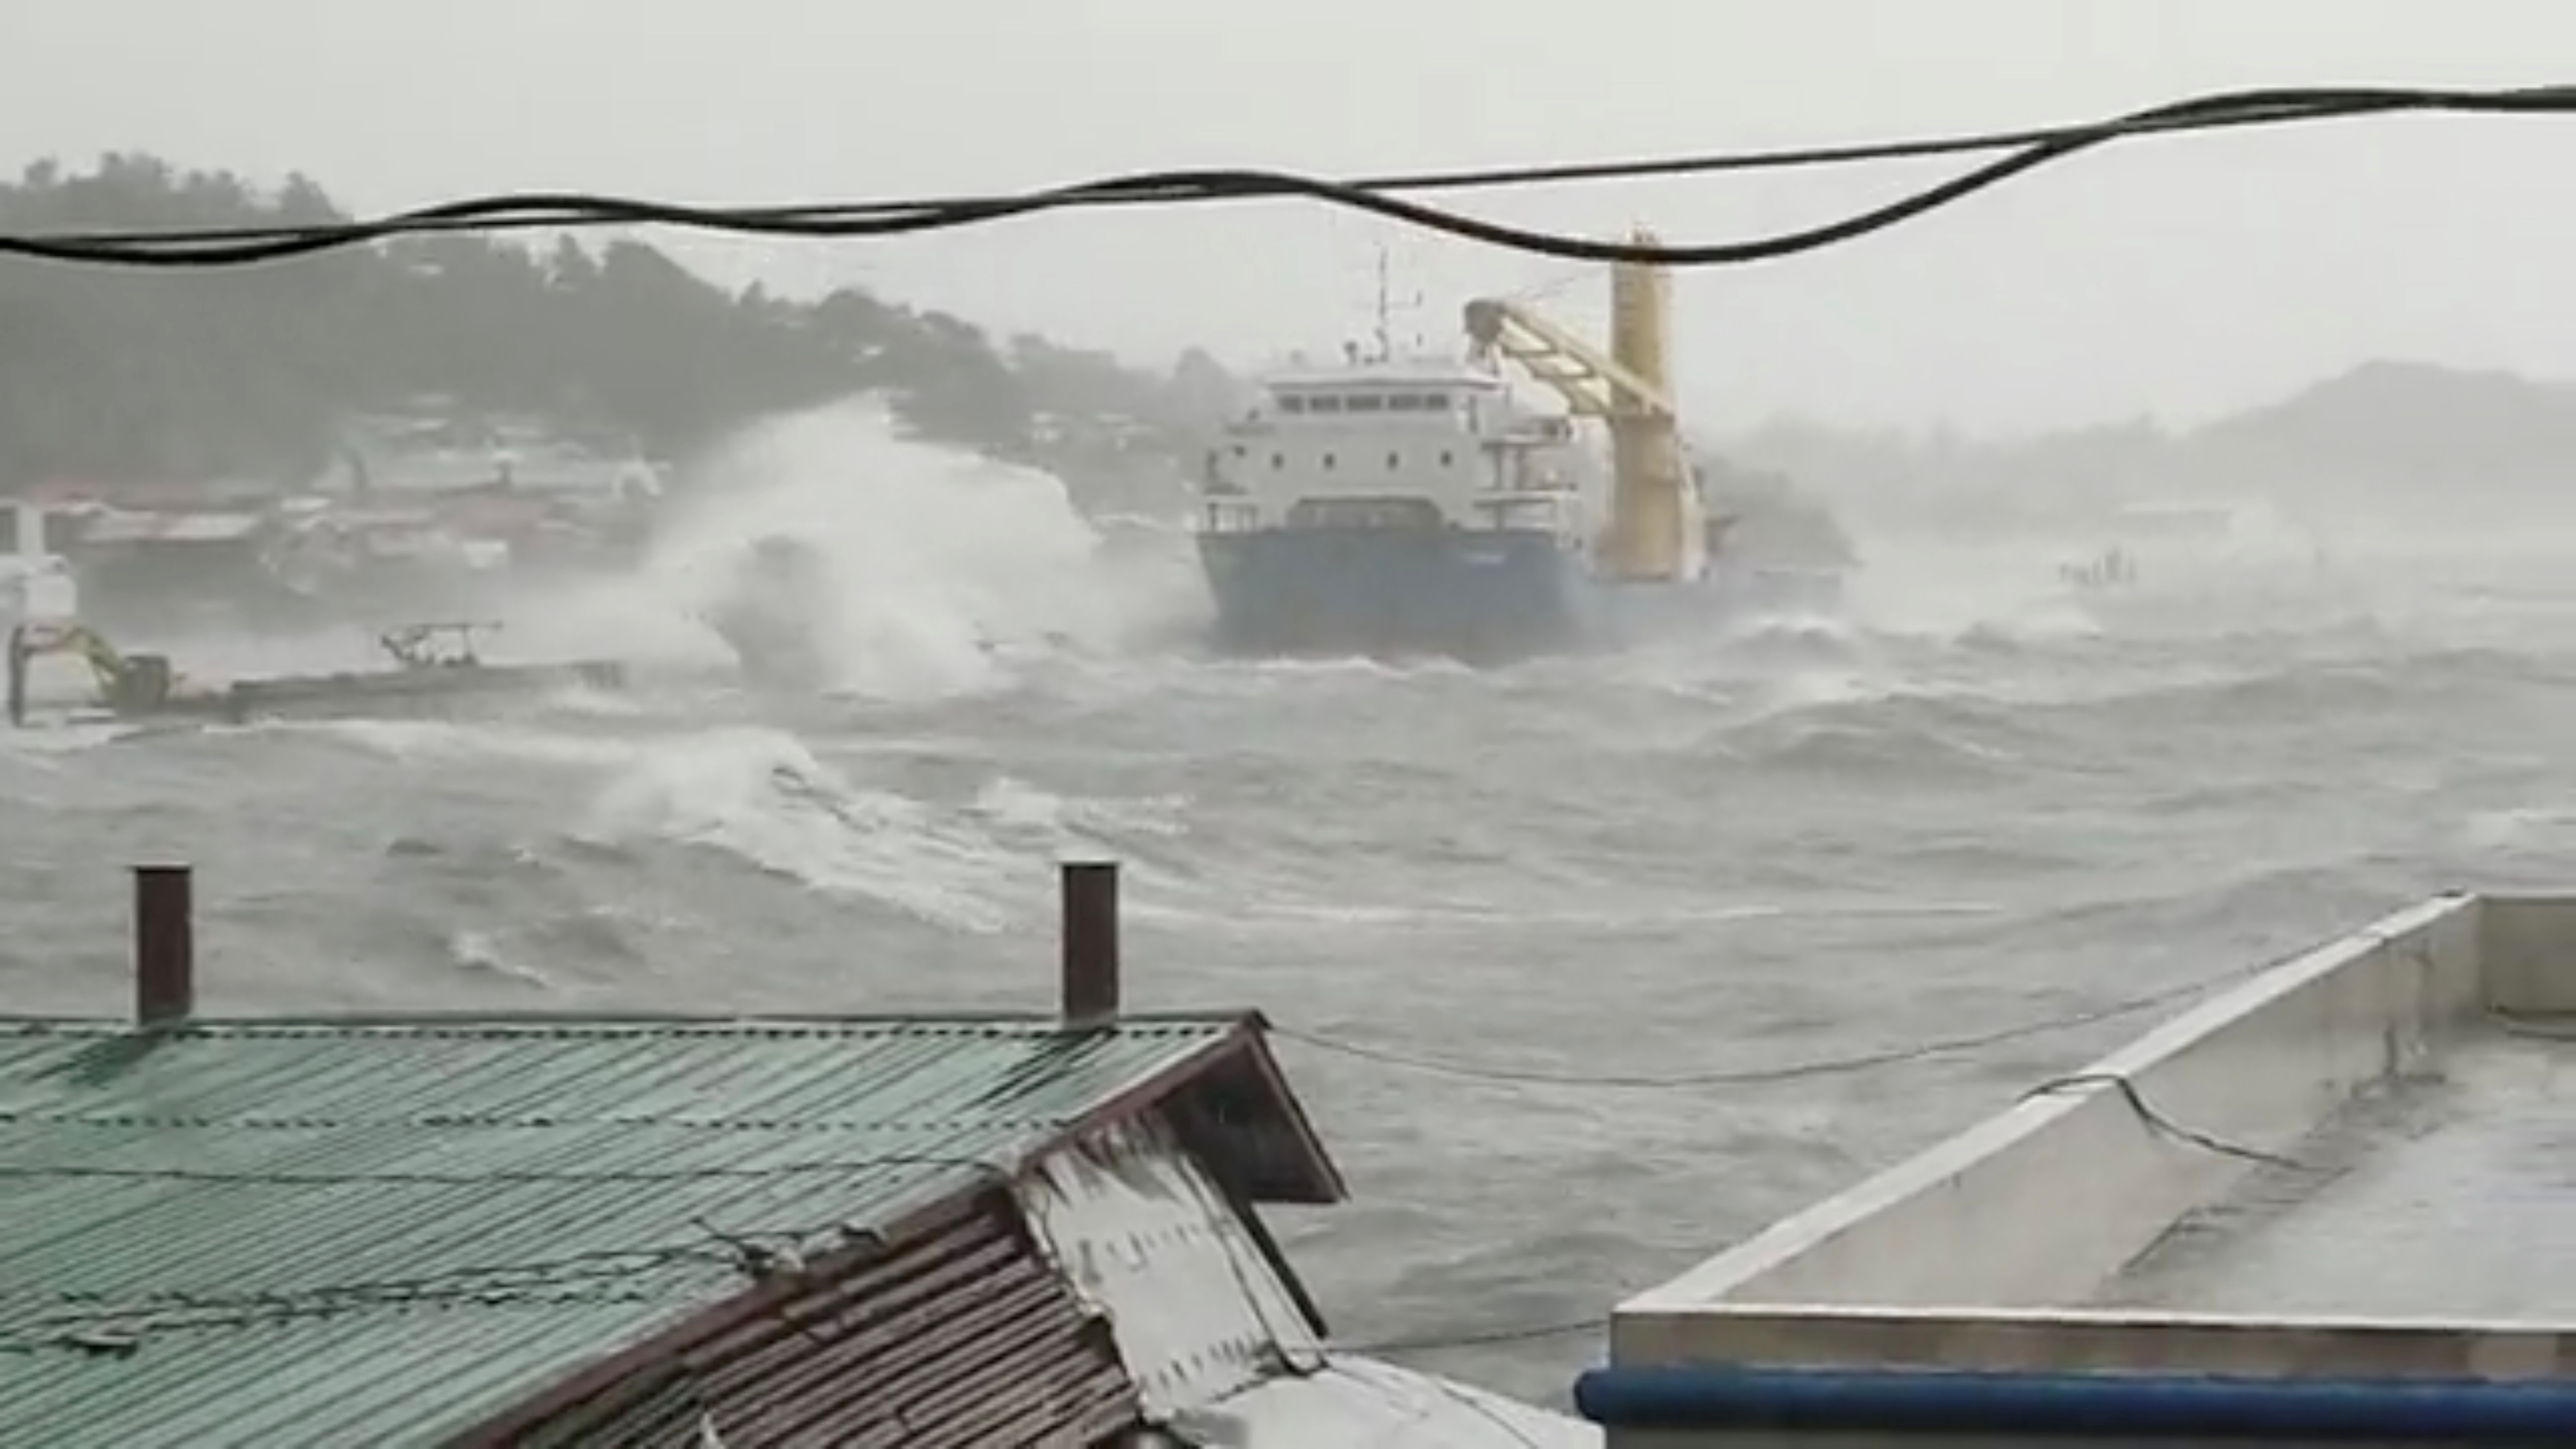 Waves crash the shore as Super Typhoon Surigae moves close to the Philippines in the province of Catbalogan, Samar, Philippines April 18, 2021, in this screen grab obtained from a social media video. DJ RJ RENE CASTINO via REUTERS